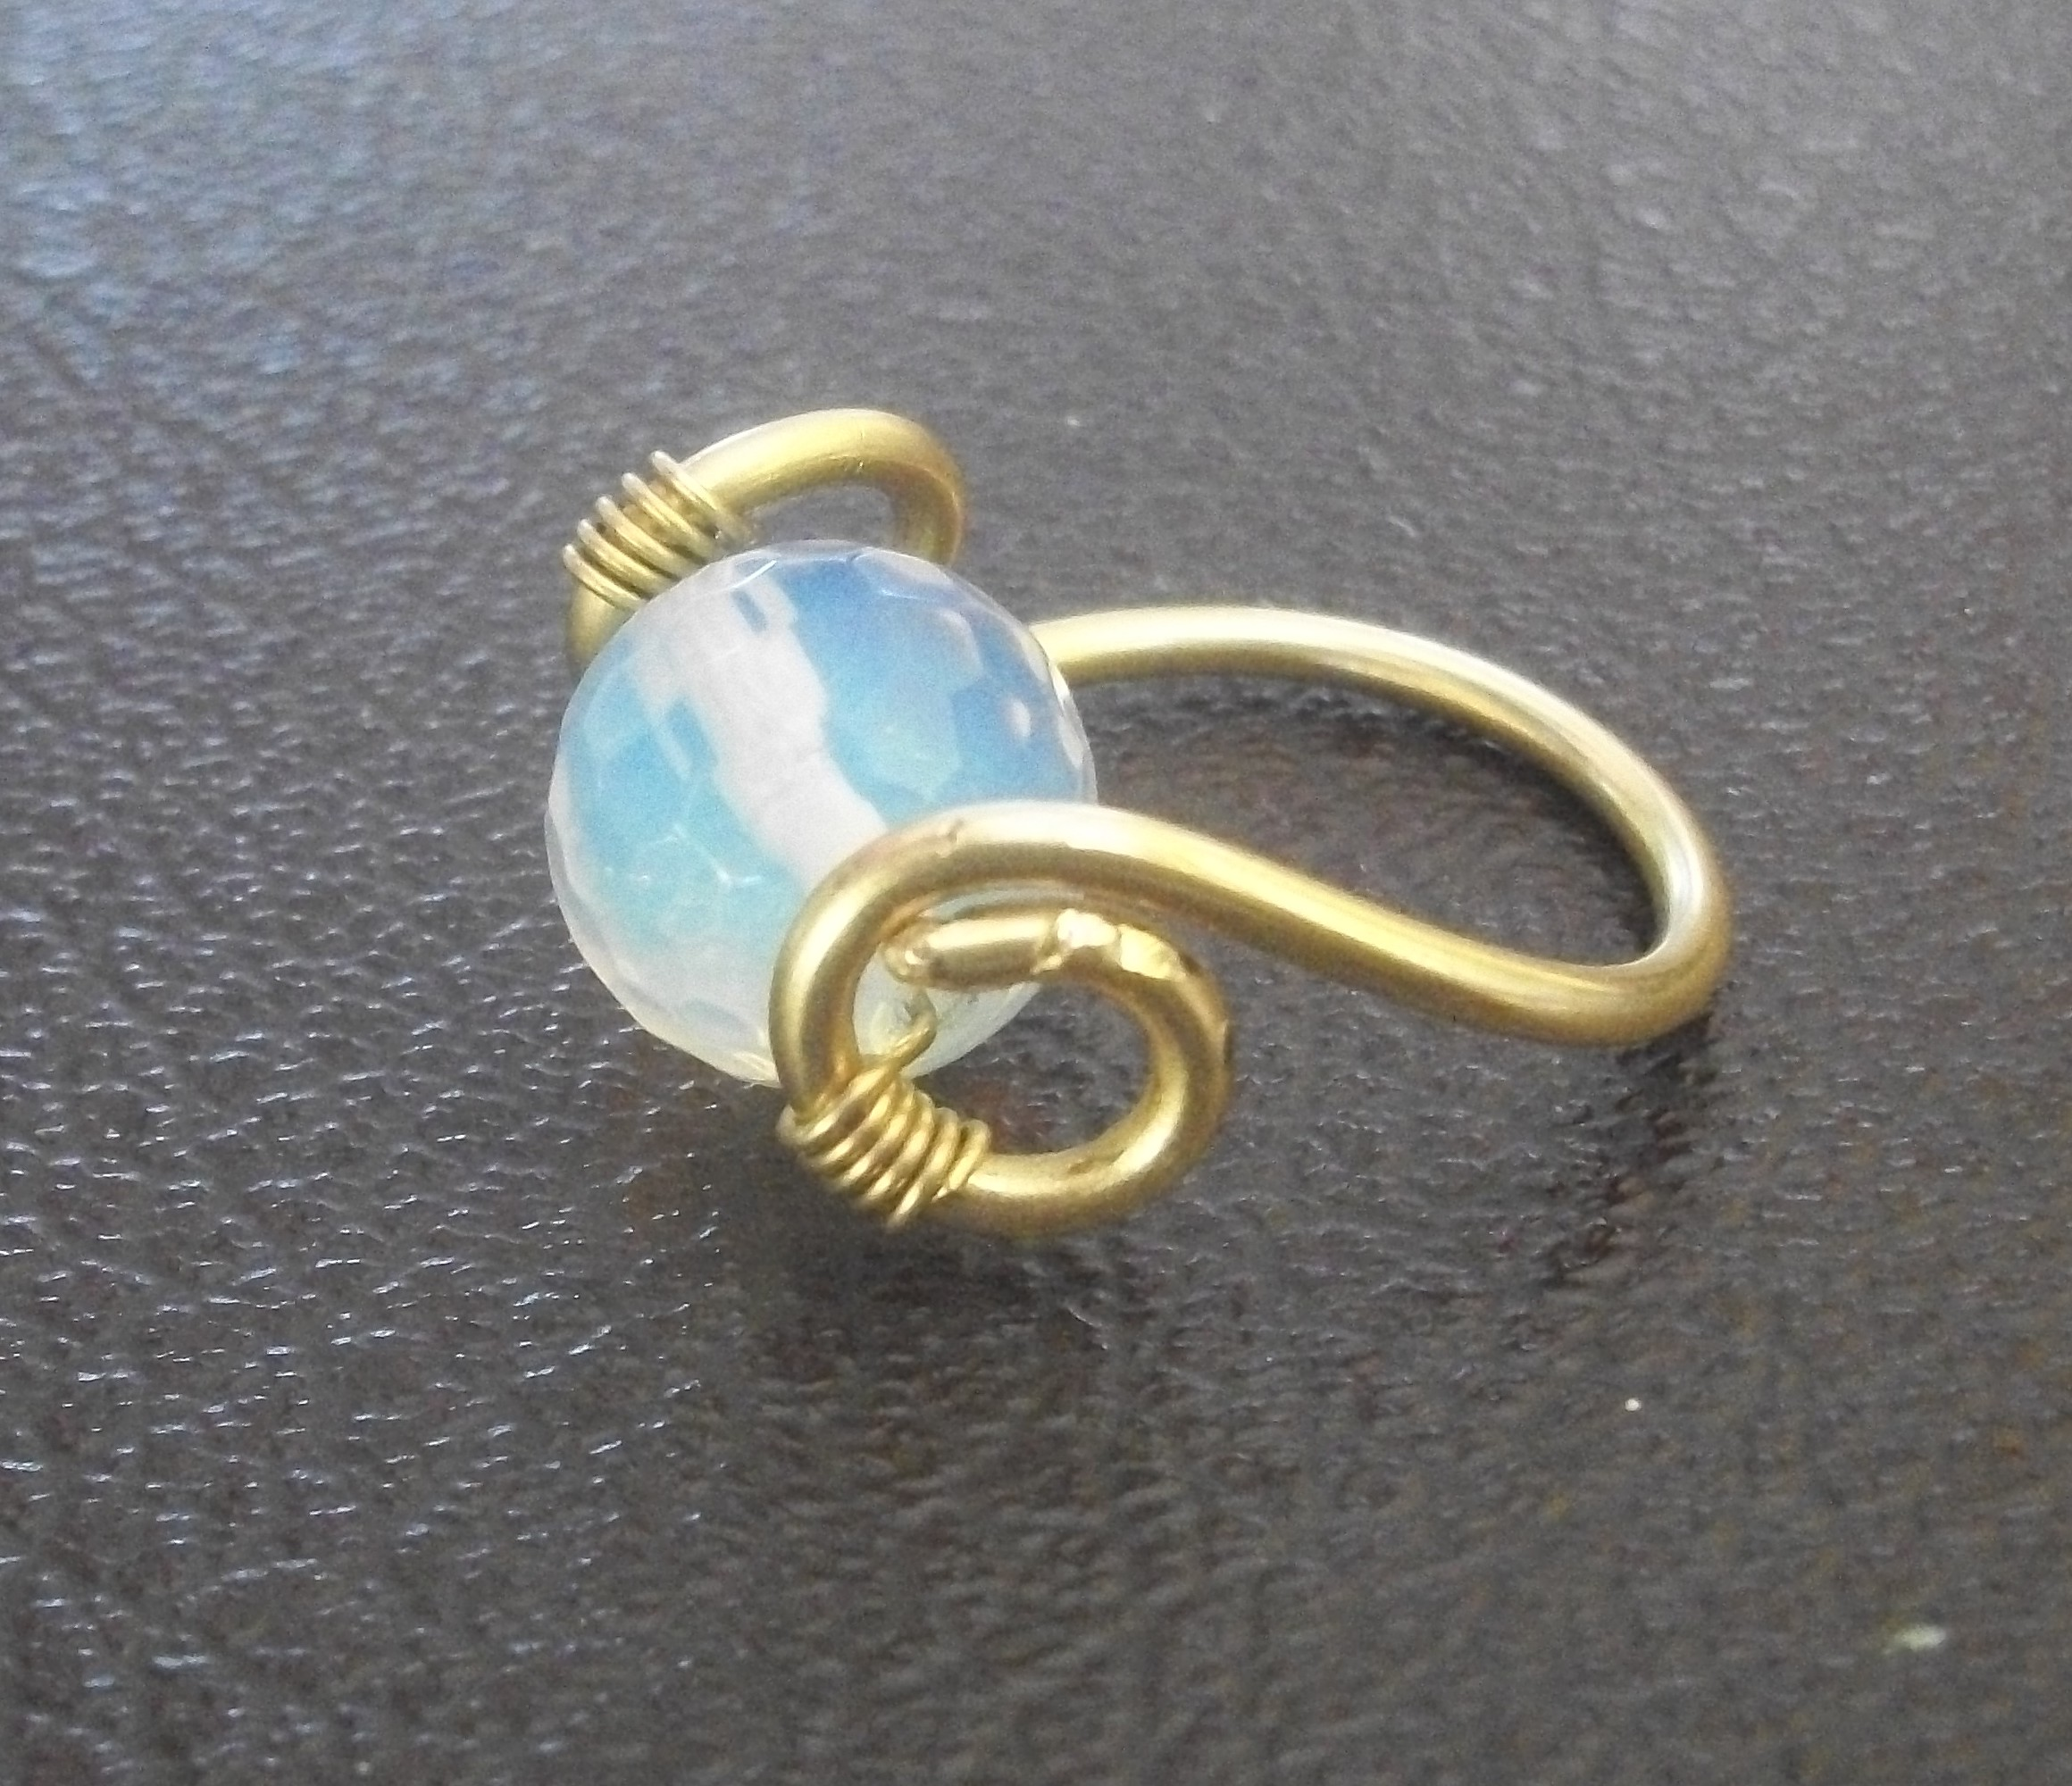 Rings with Moonstone